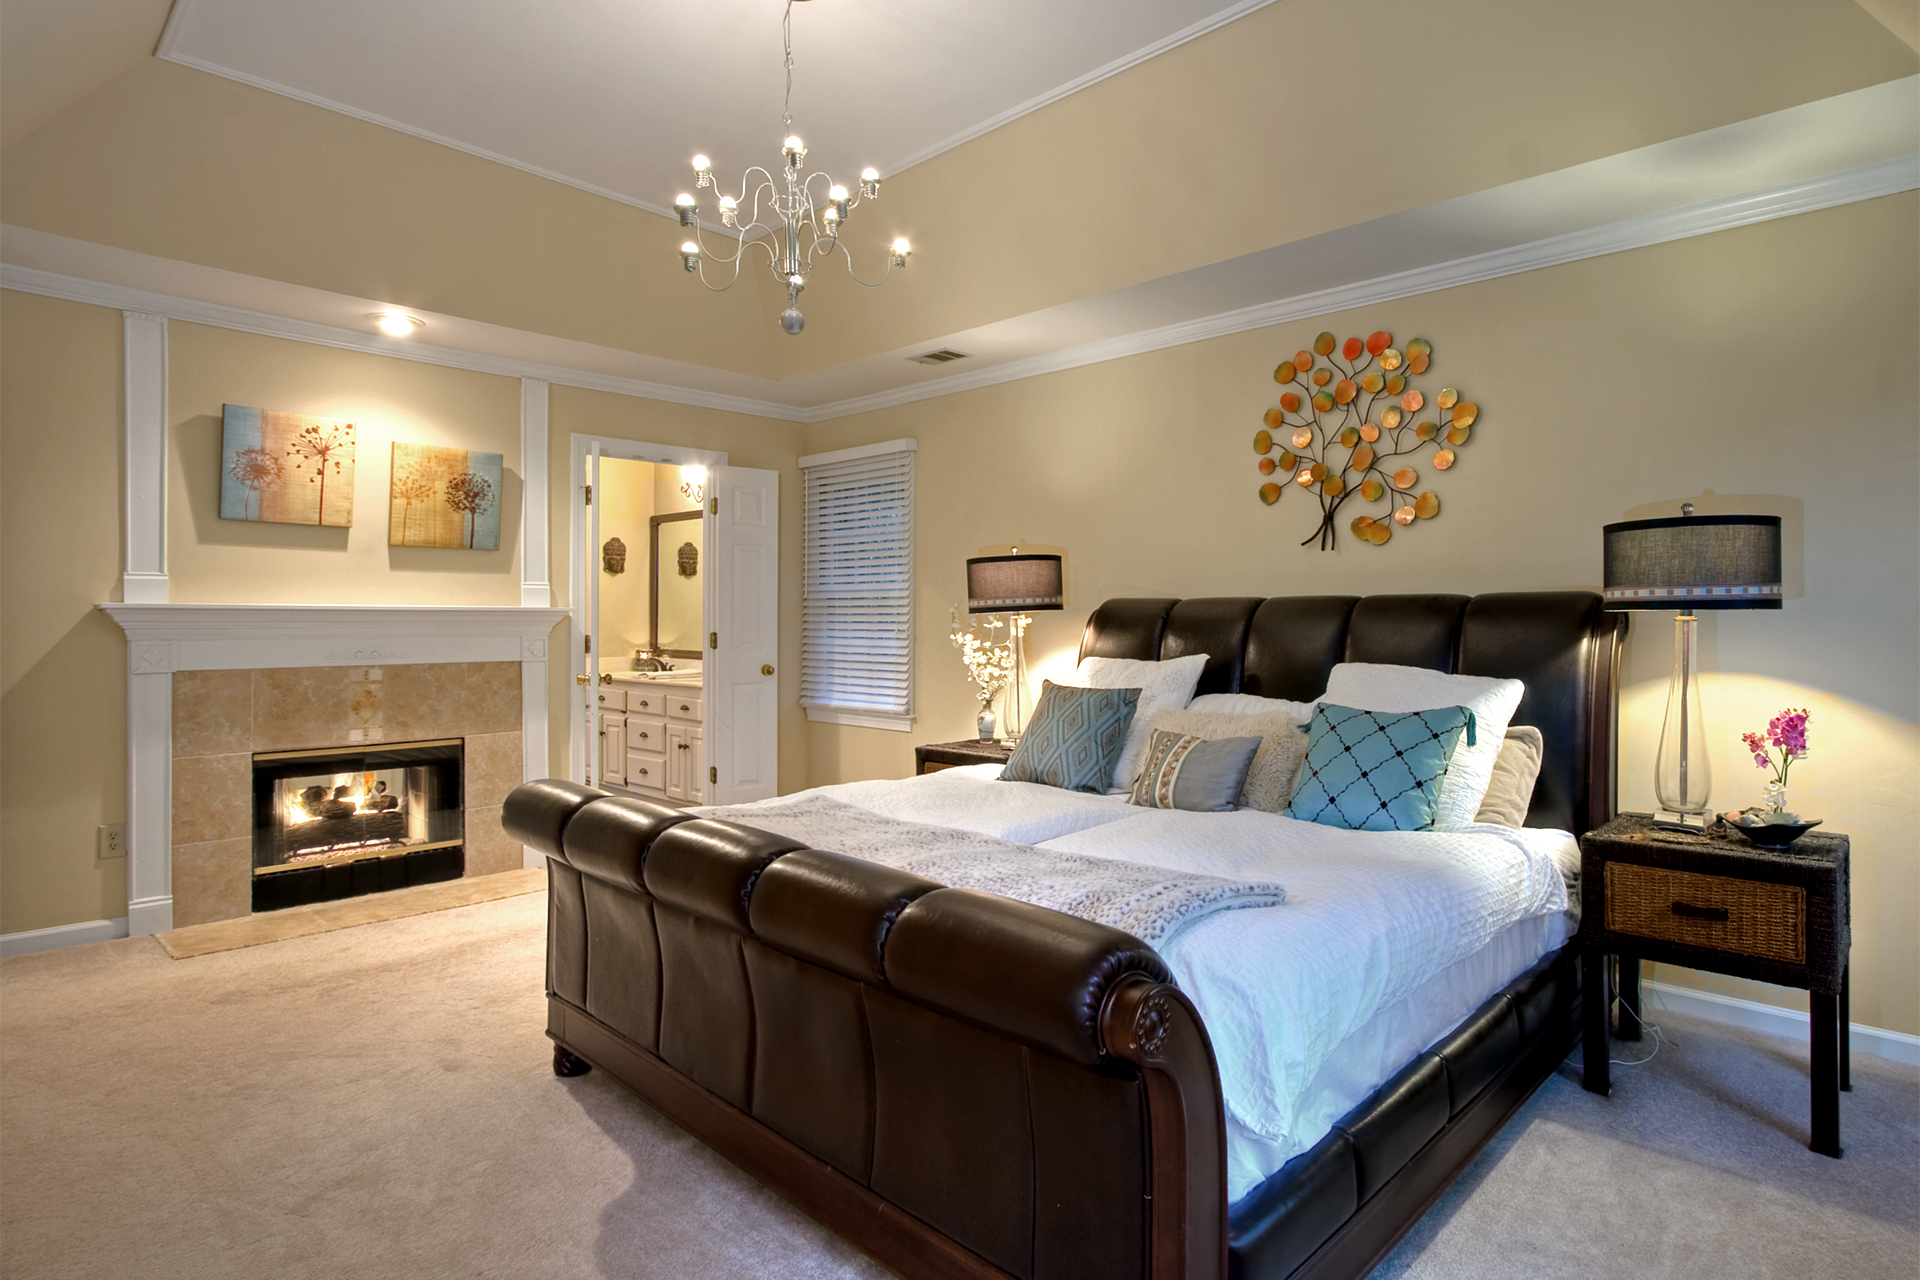 Real Estate Interior Bedroom